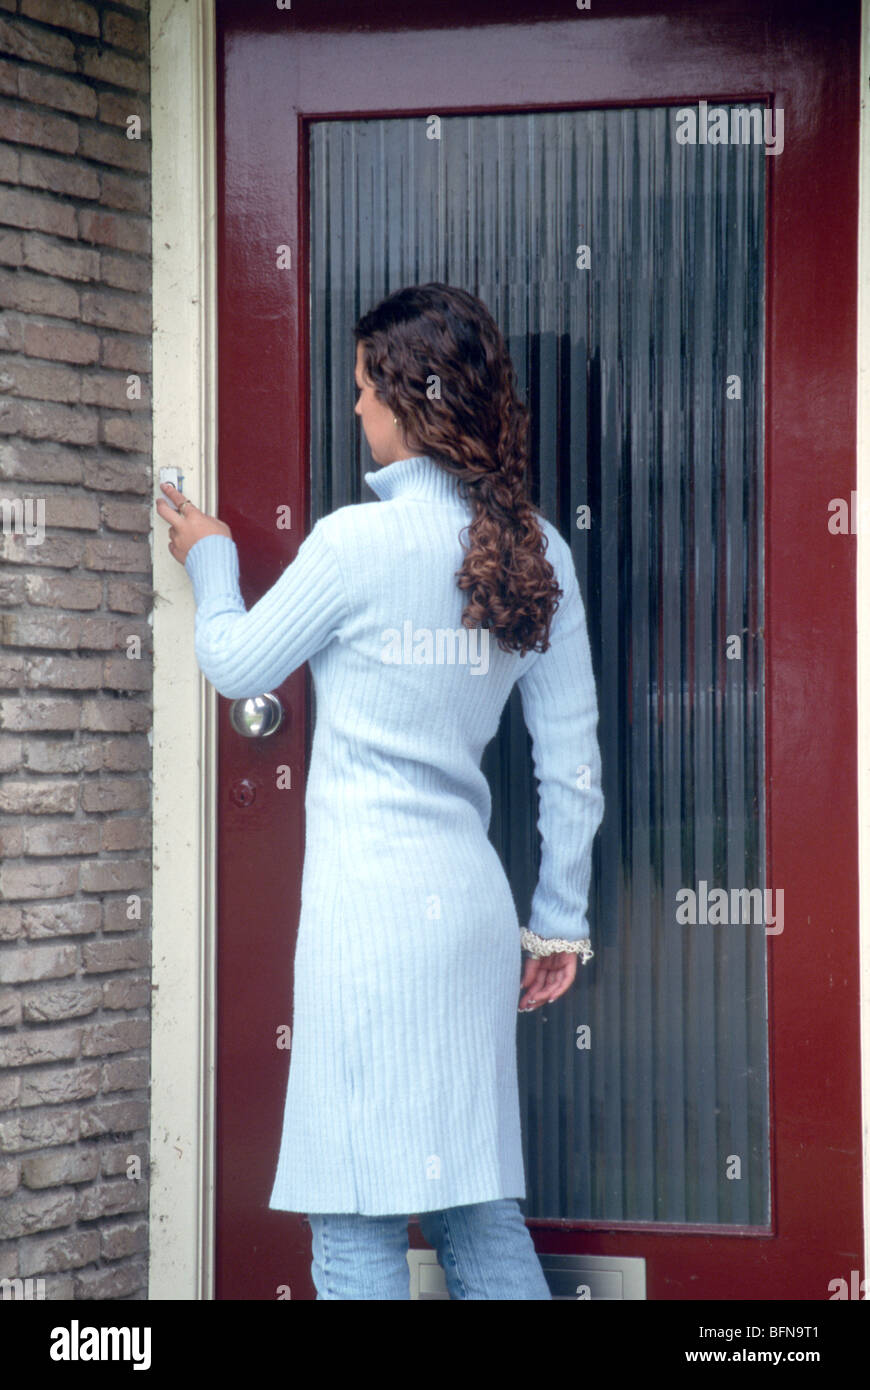 Young Woman Ringing Front Door Bell Stock Photo 26898929 Alamy